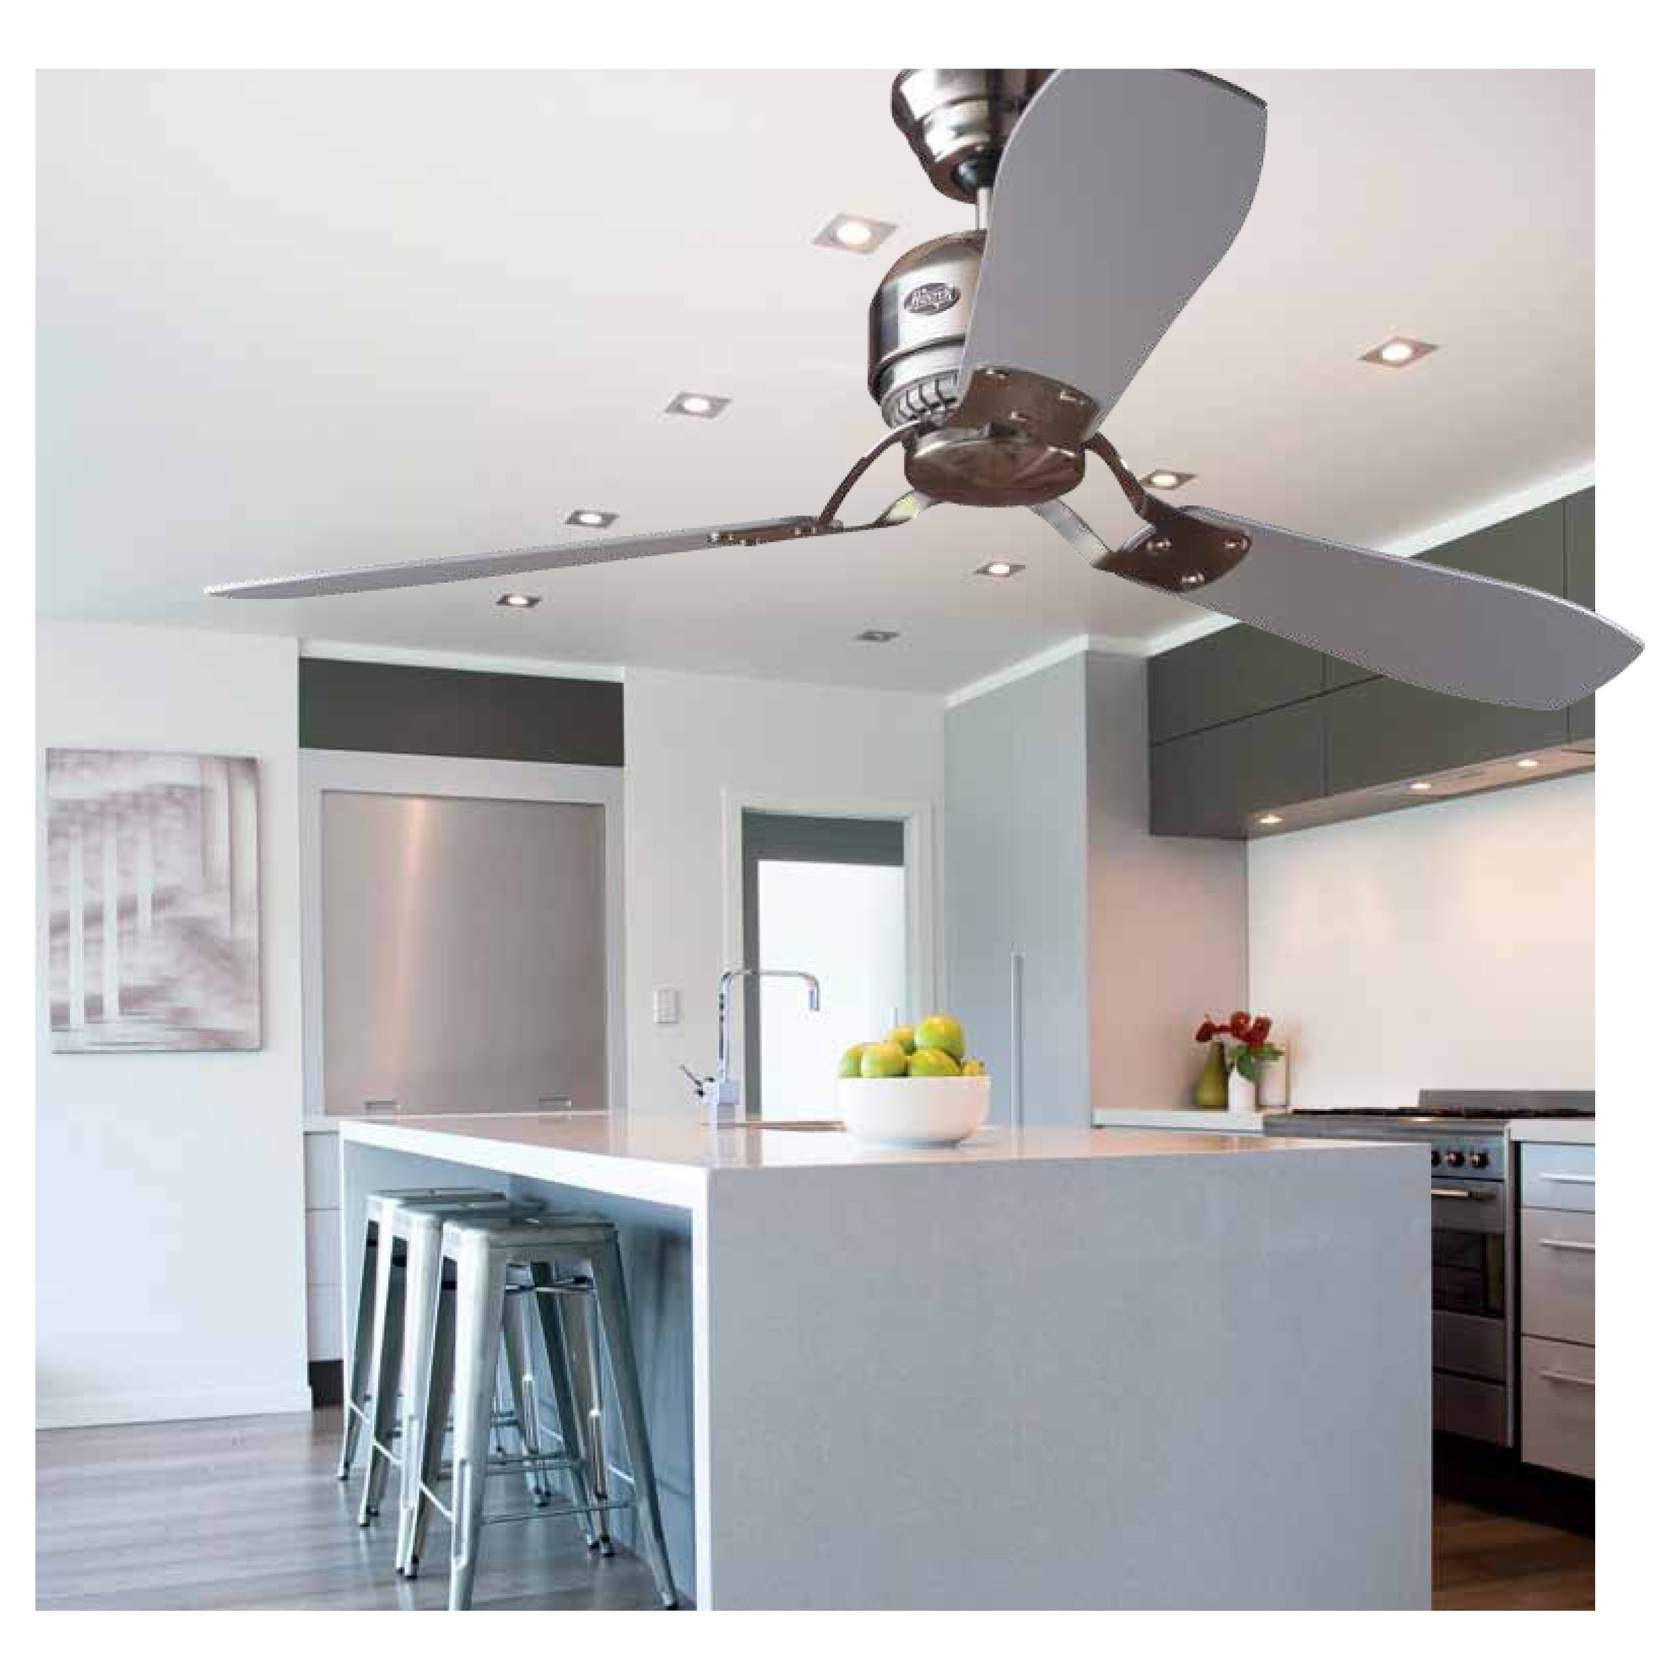 Loft Hunter Fan of Ceiling Chrome 3 blades ø132cm